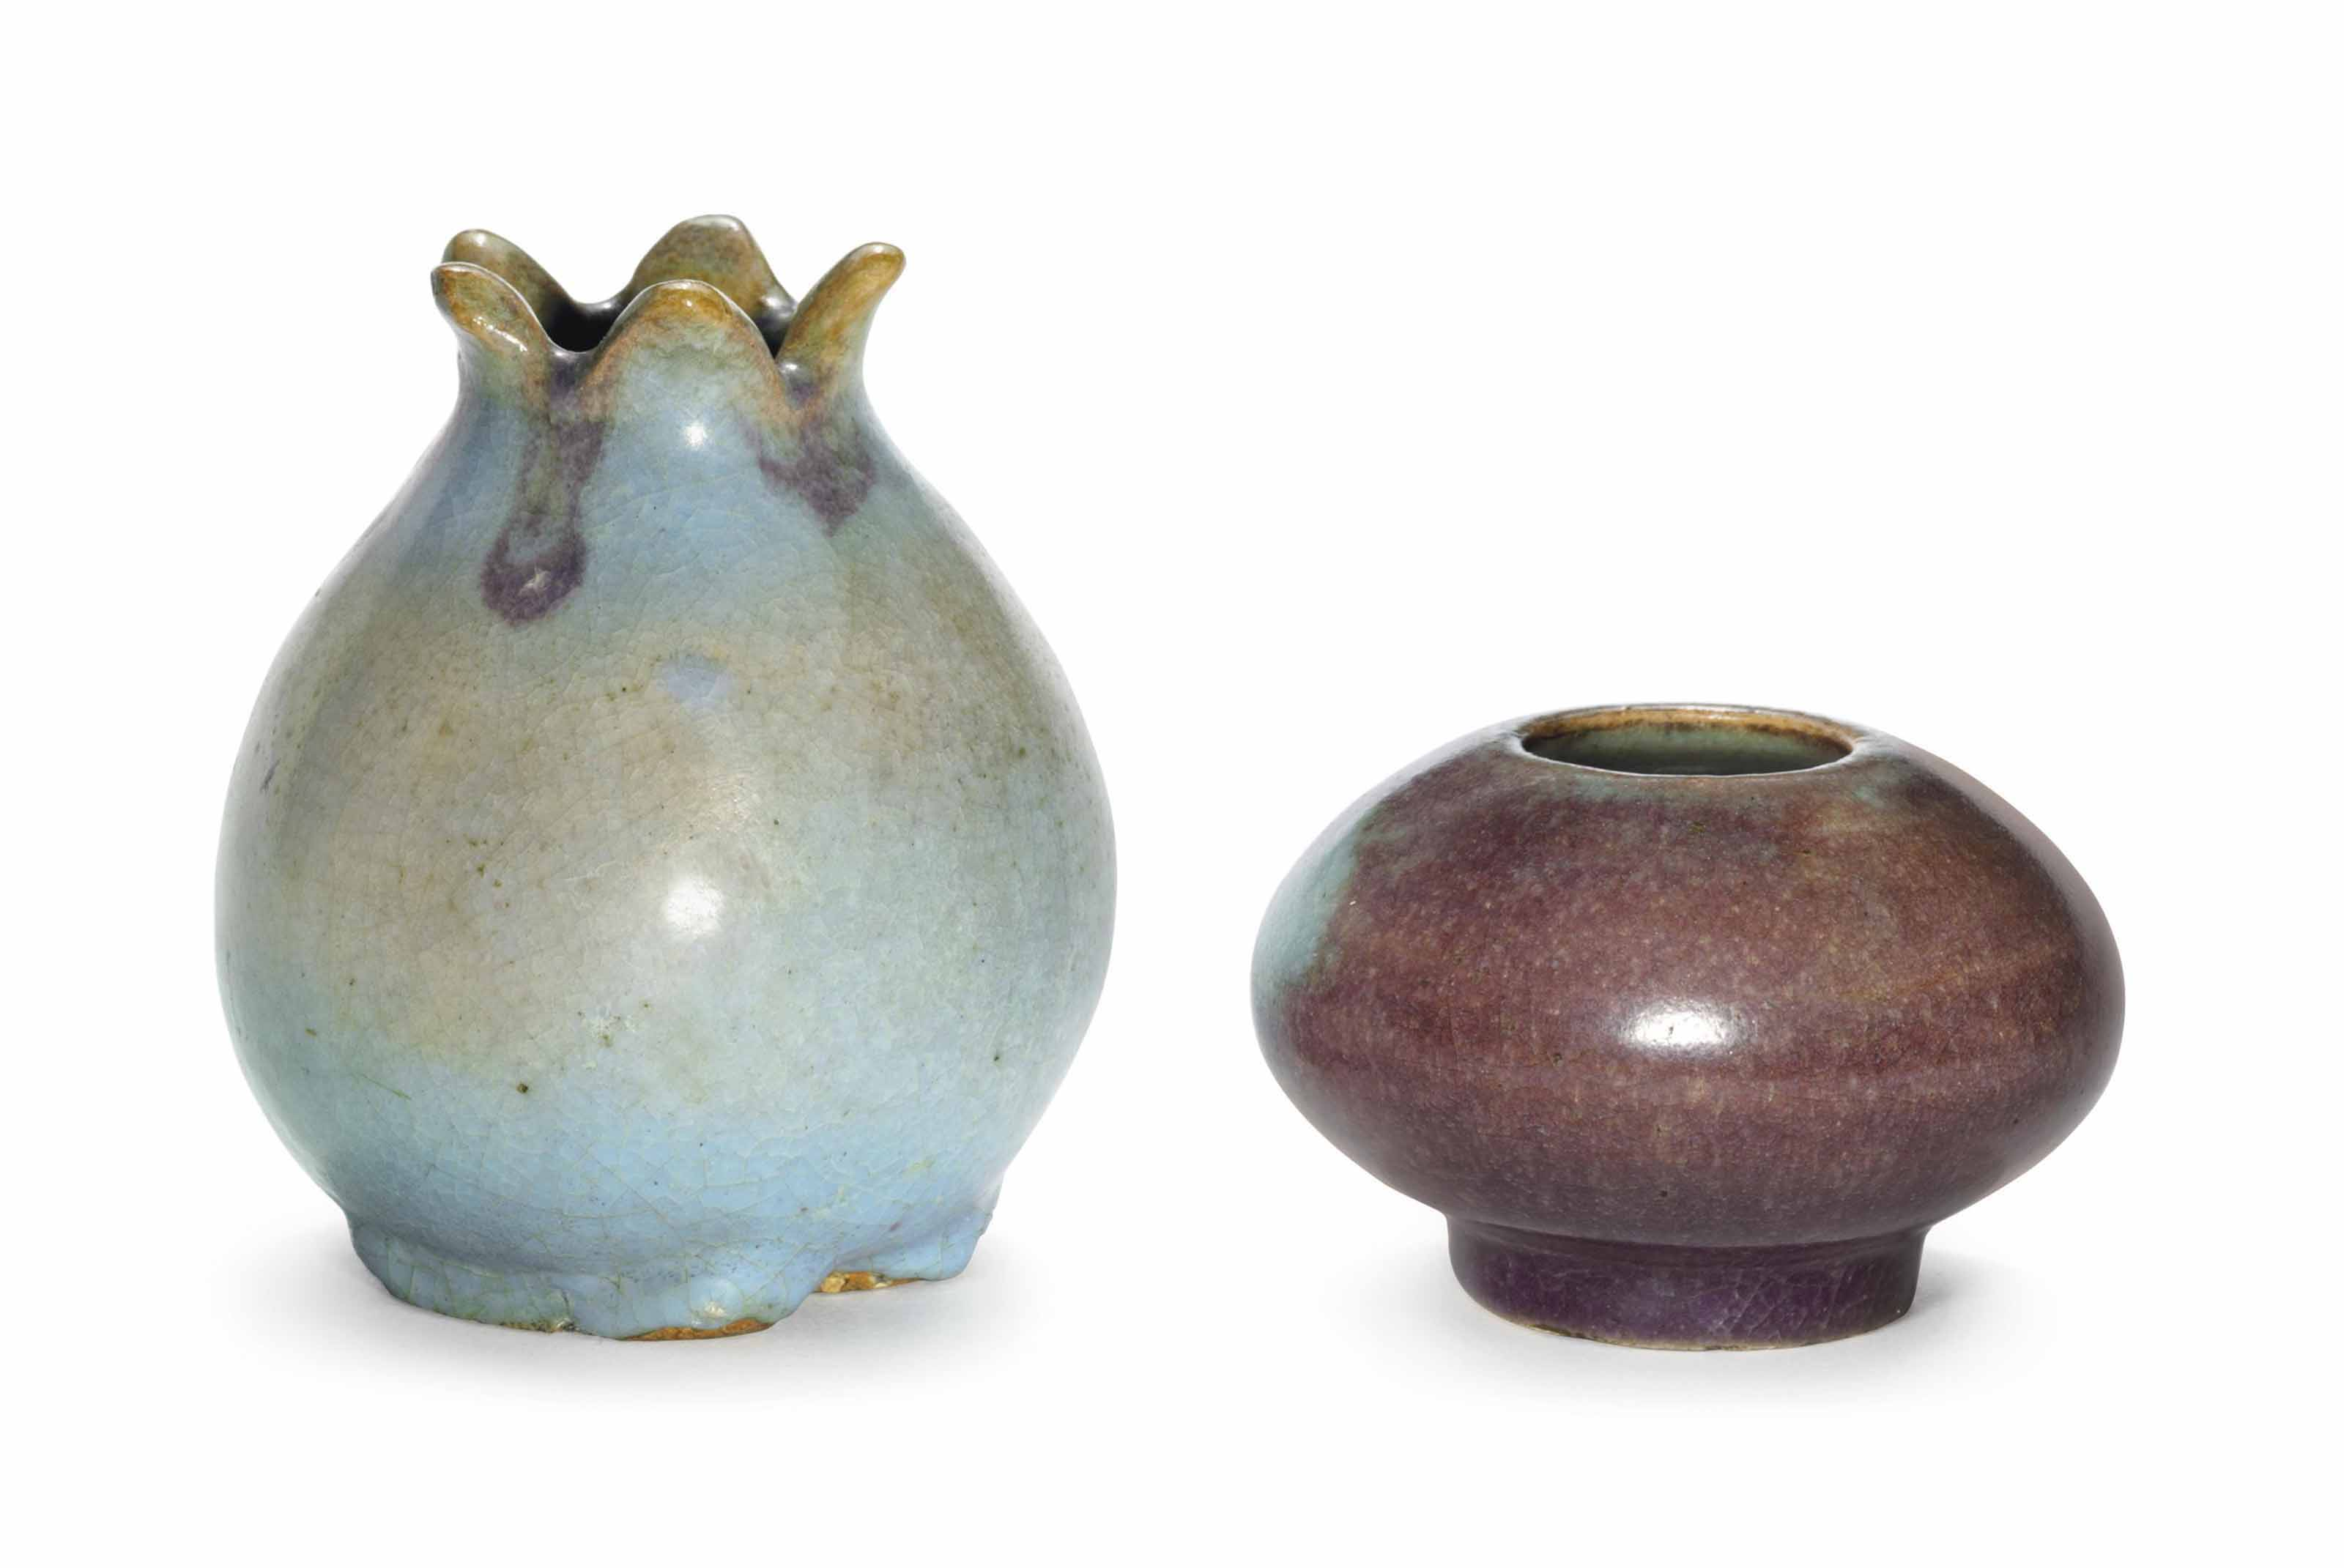 TWO SMALL 'MA JUN' WATER POTS